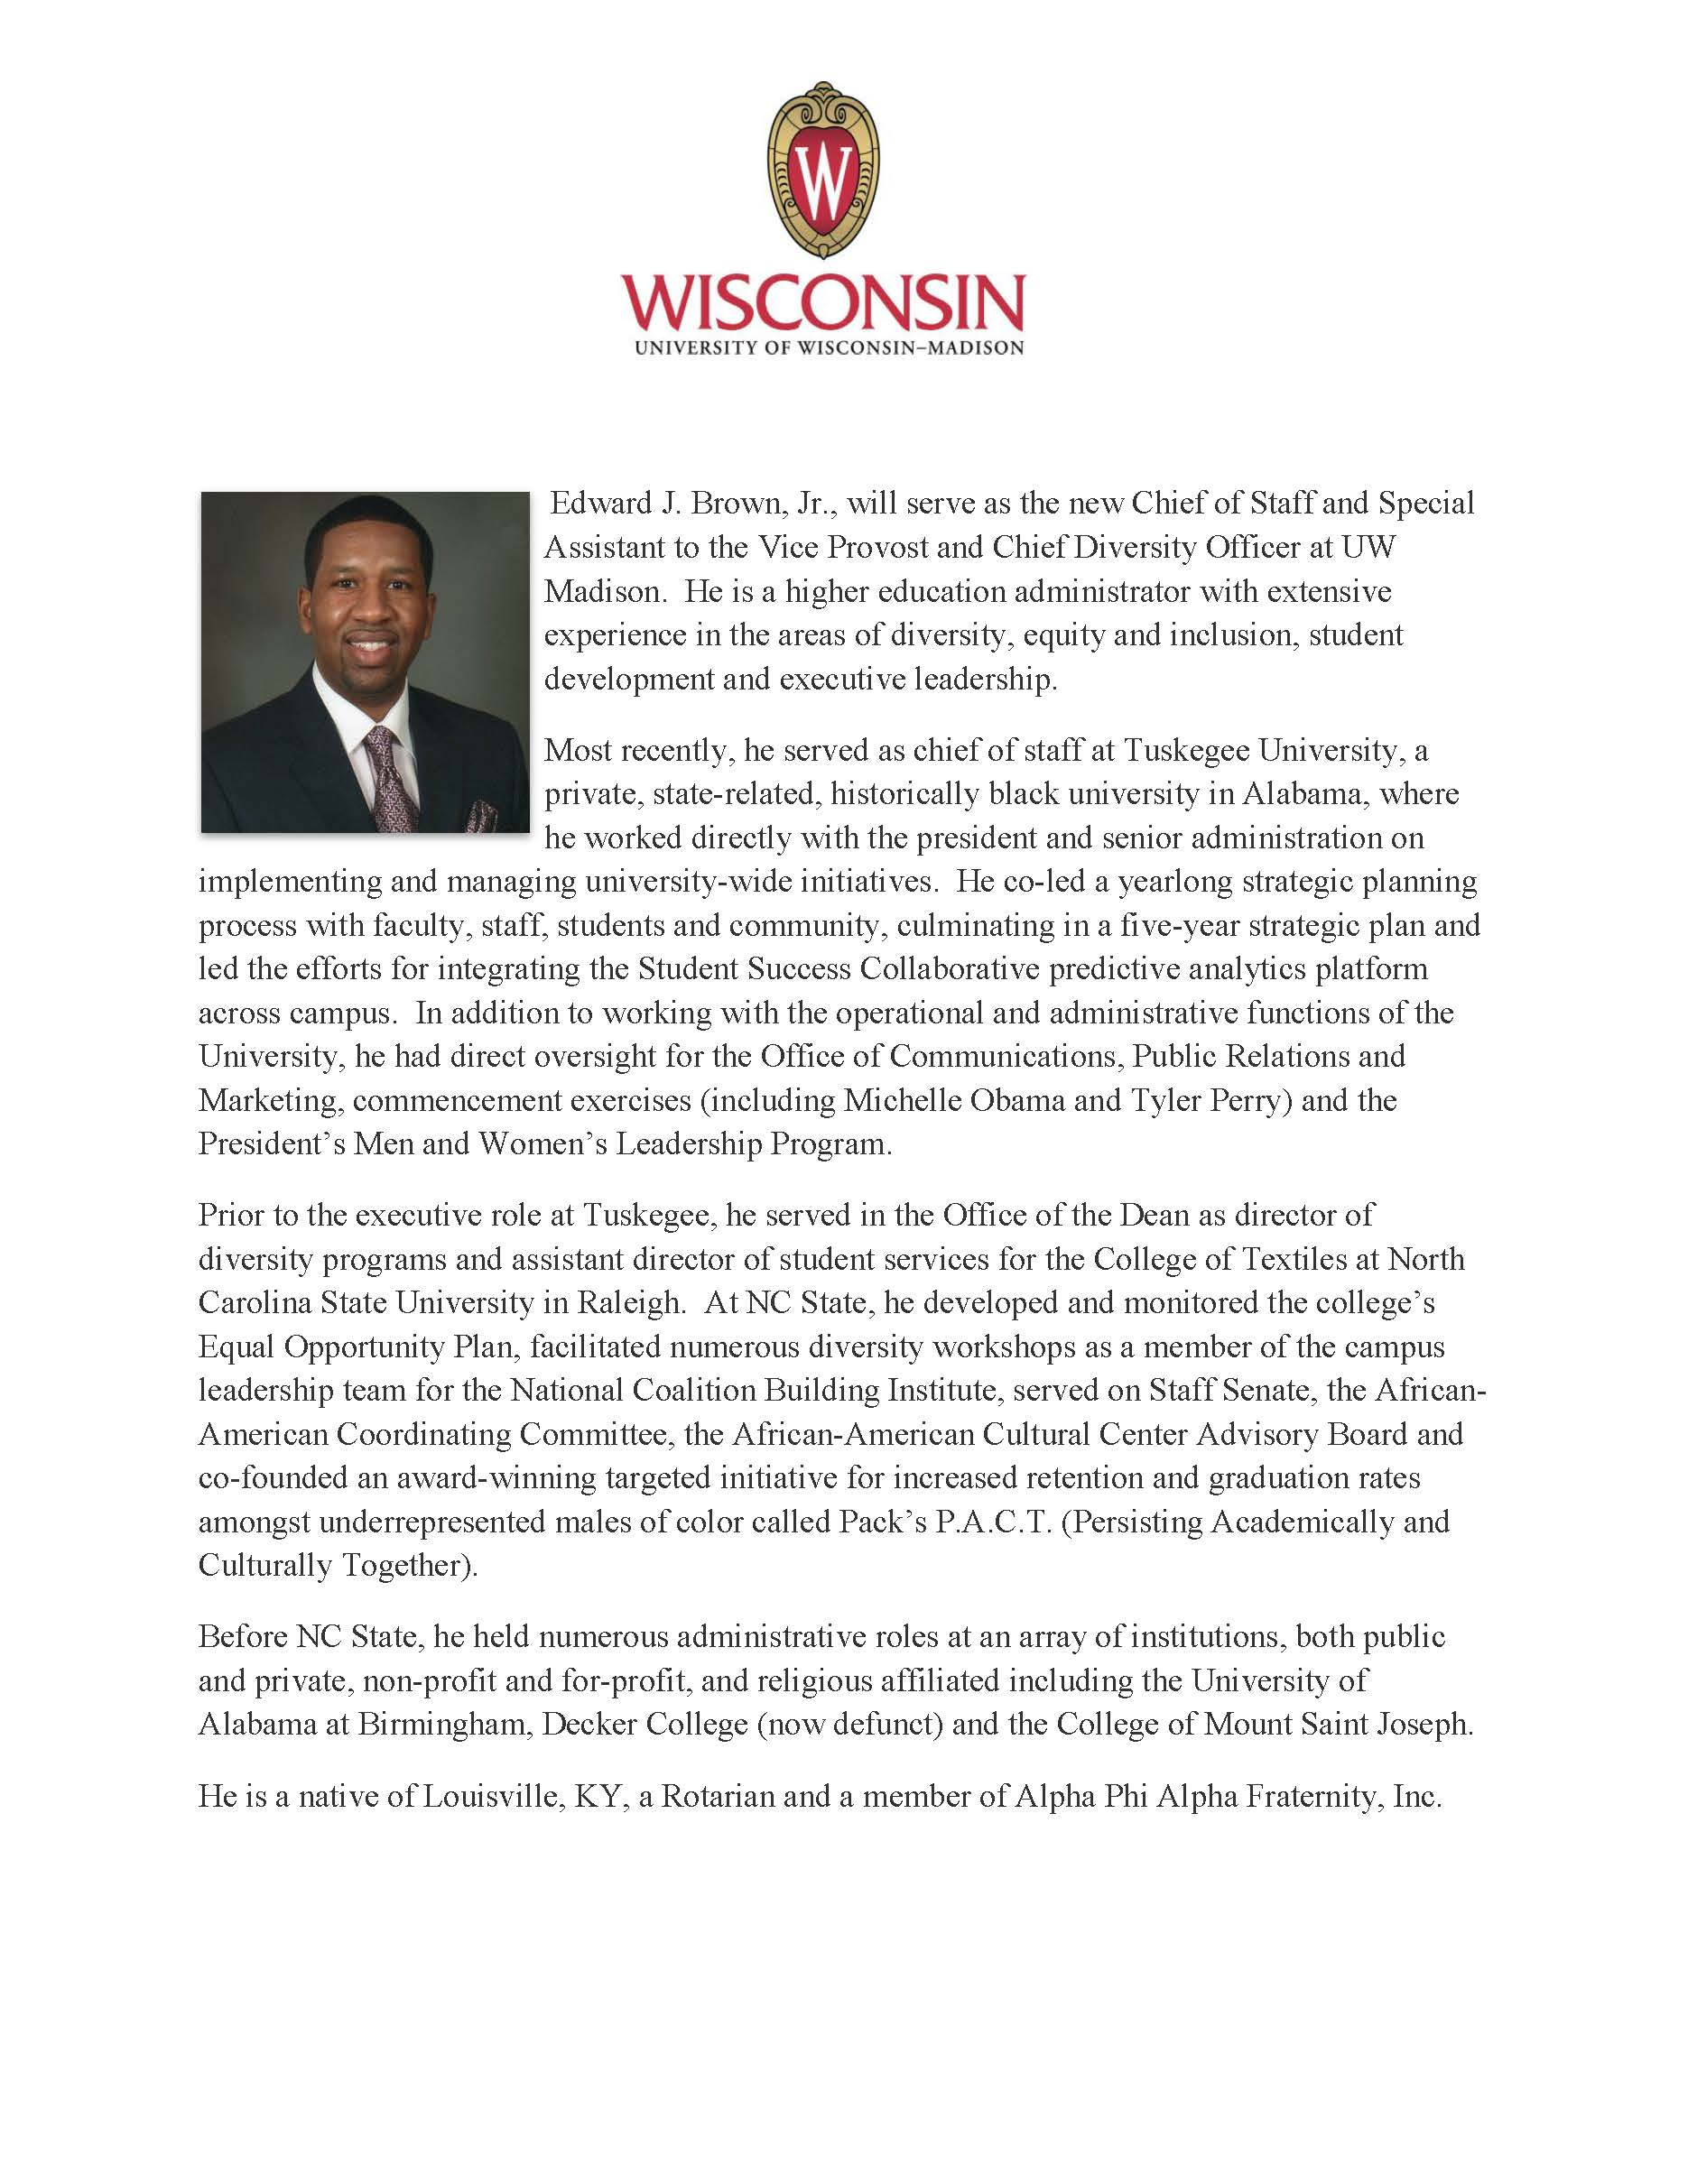 Announcement of hiring Edward Brown as CDO Special Assistant